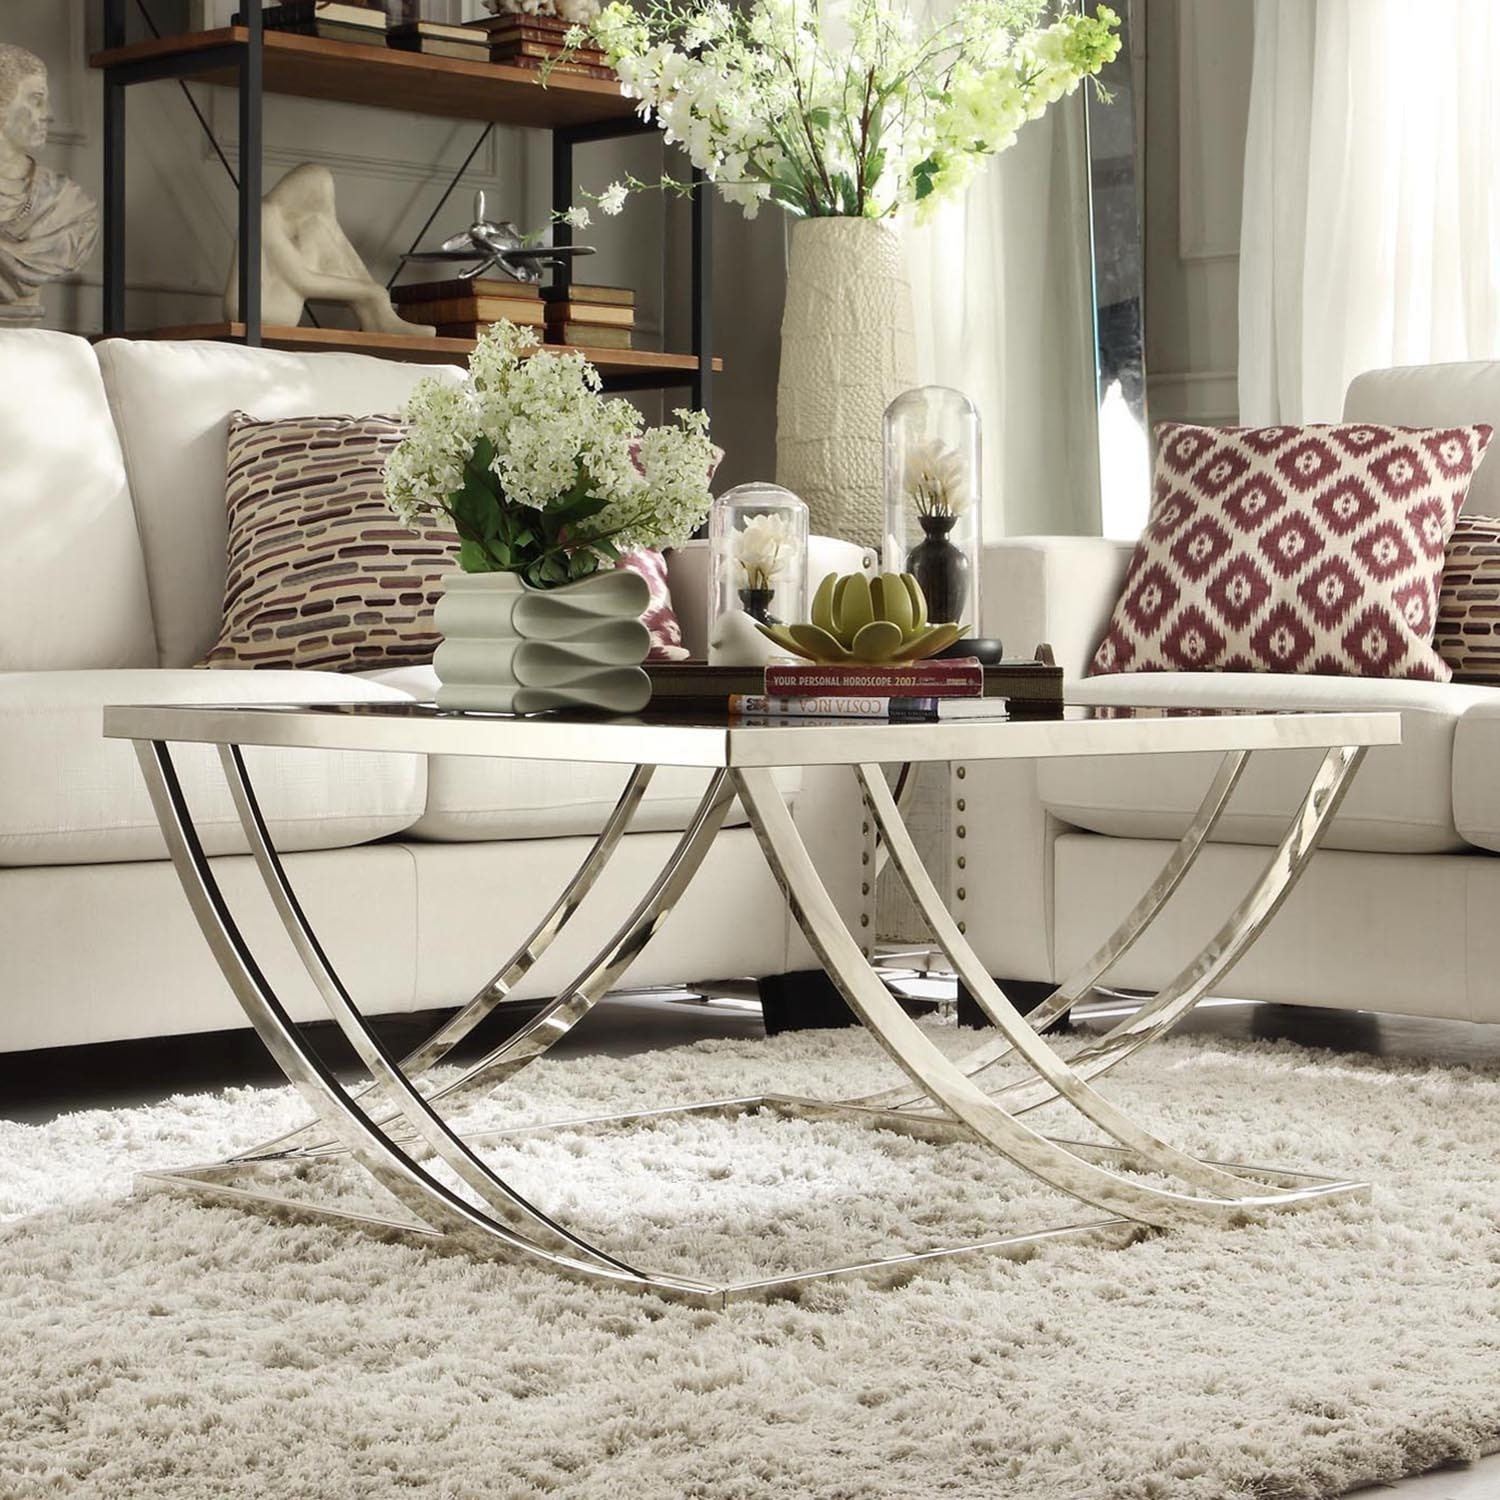 Anson Steel Brushed Arch Curved Sculptural Modern Coffee Table by iNSPIRE Q  Bold - Free Shipping Today - Overstock.com - 14944452